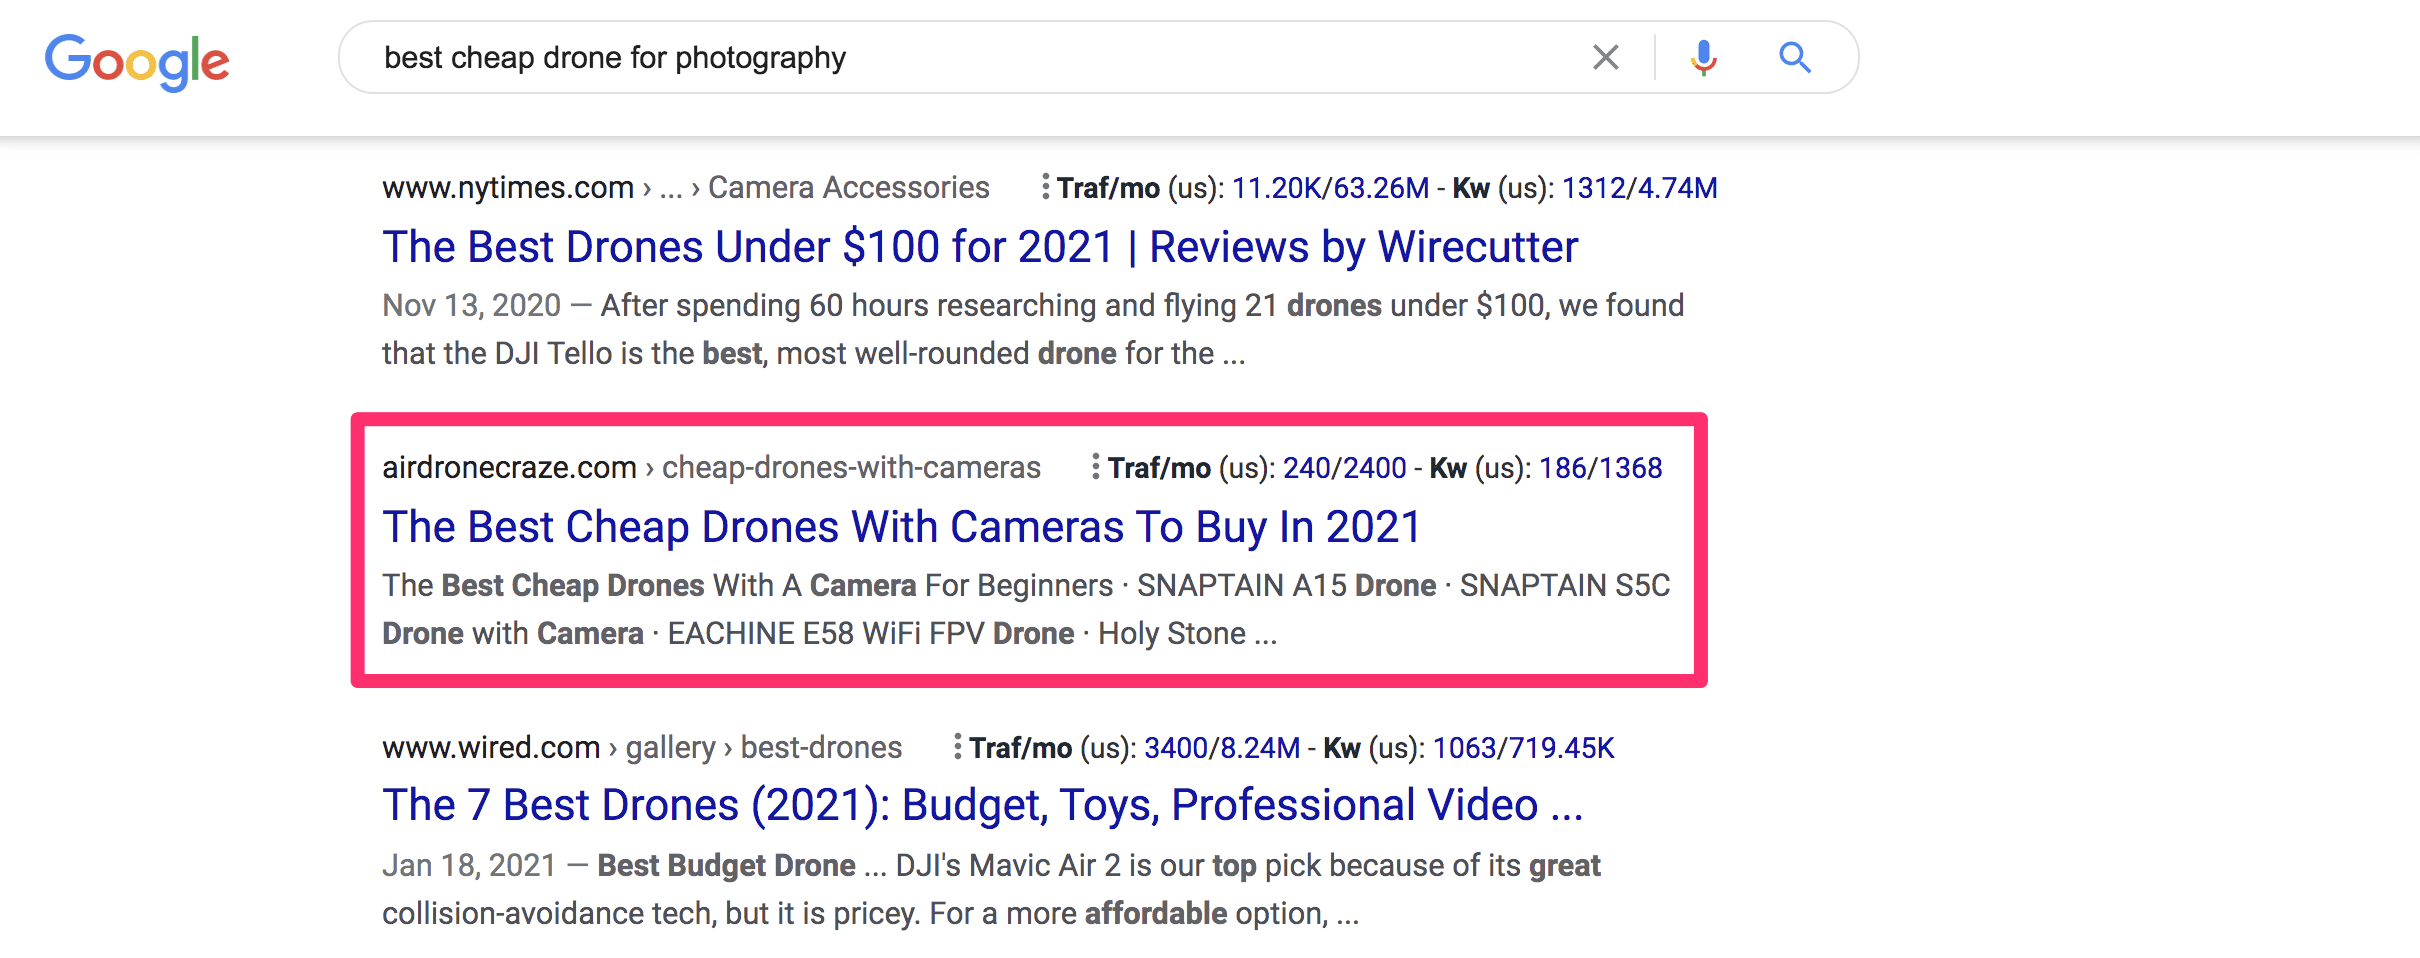 low domain ranked sites appearing in the serps